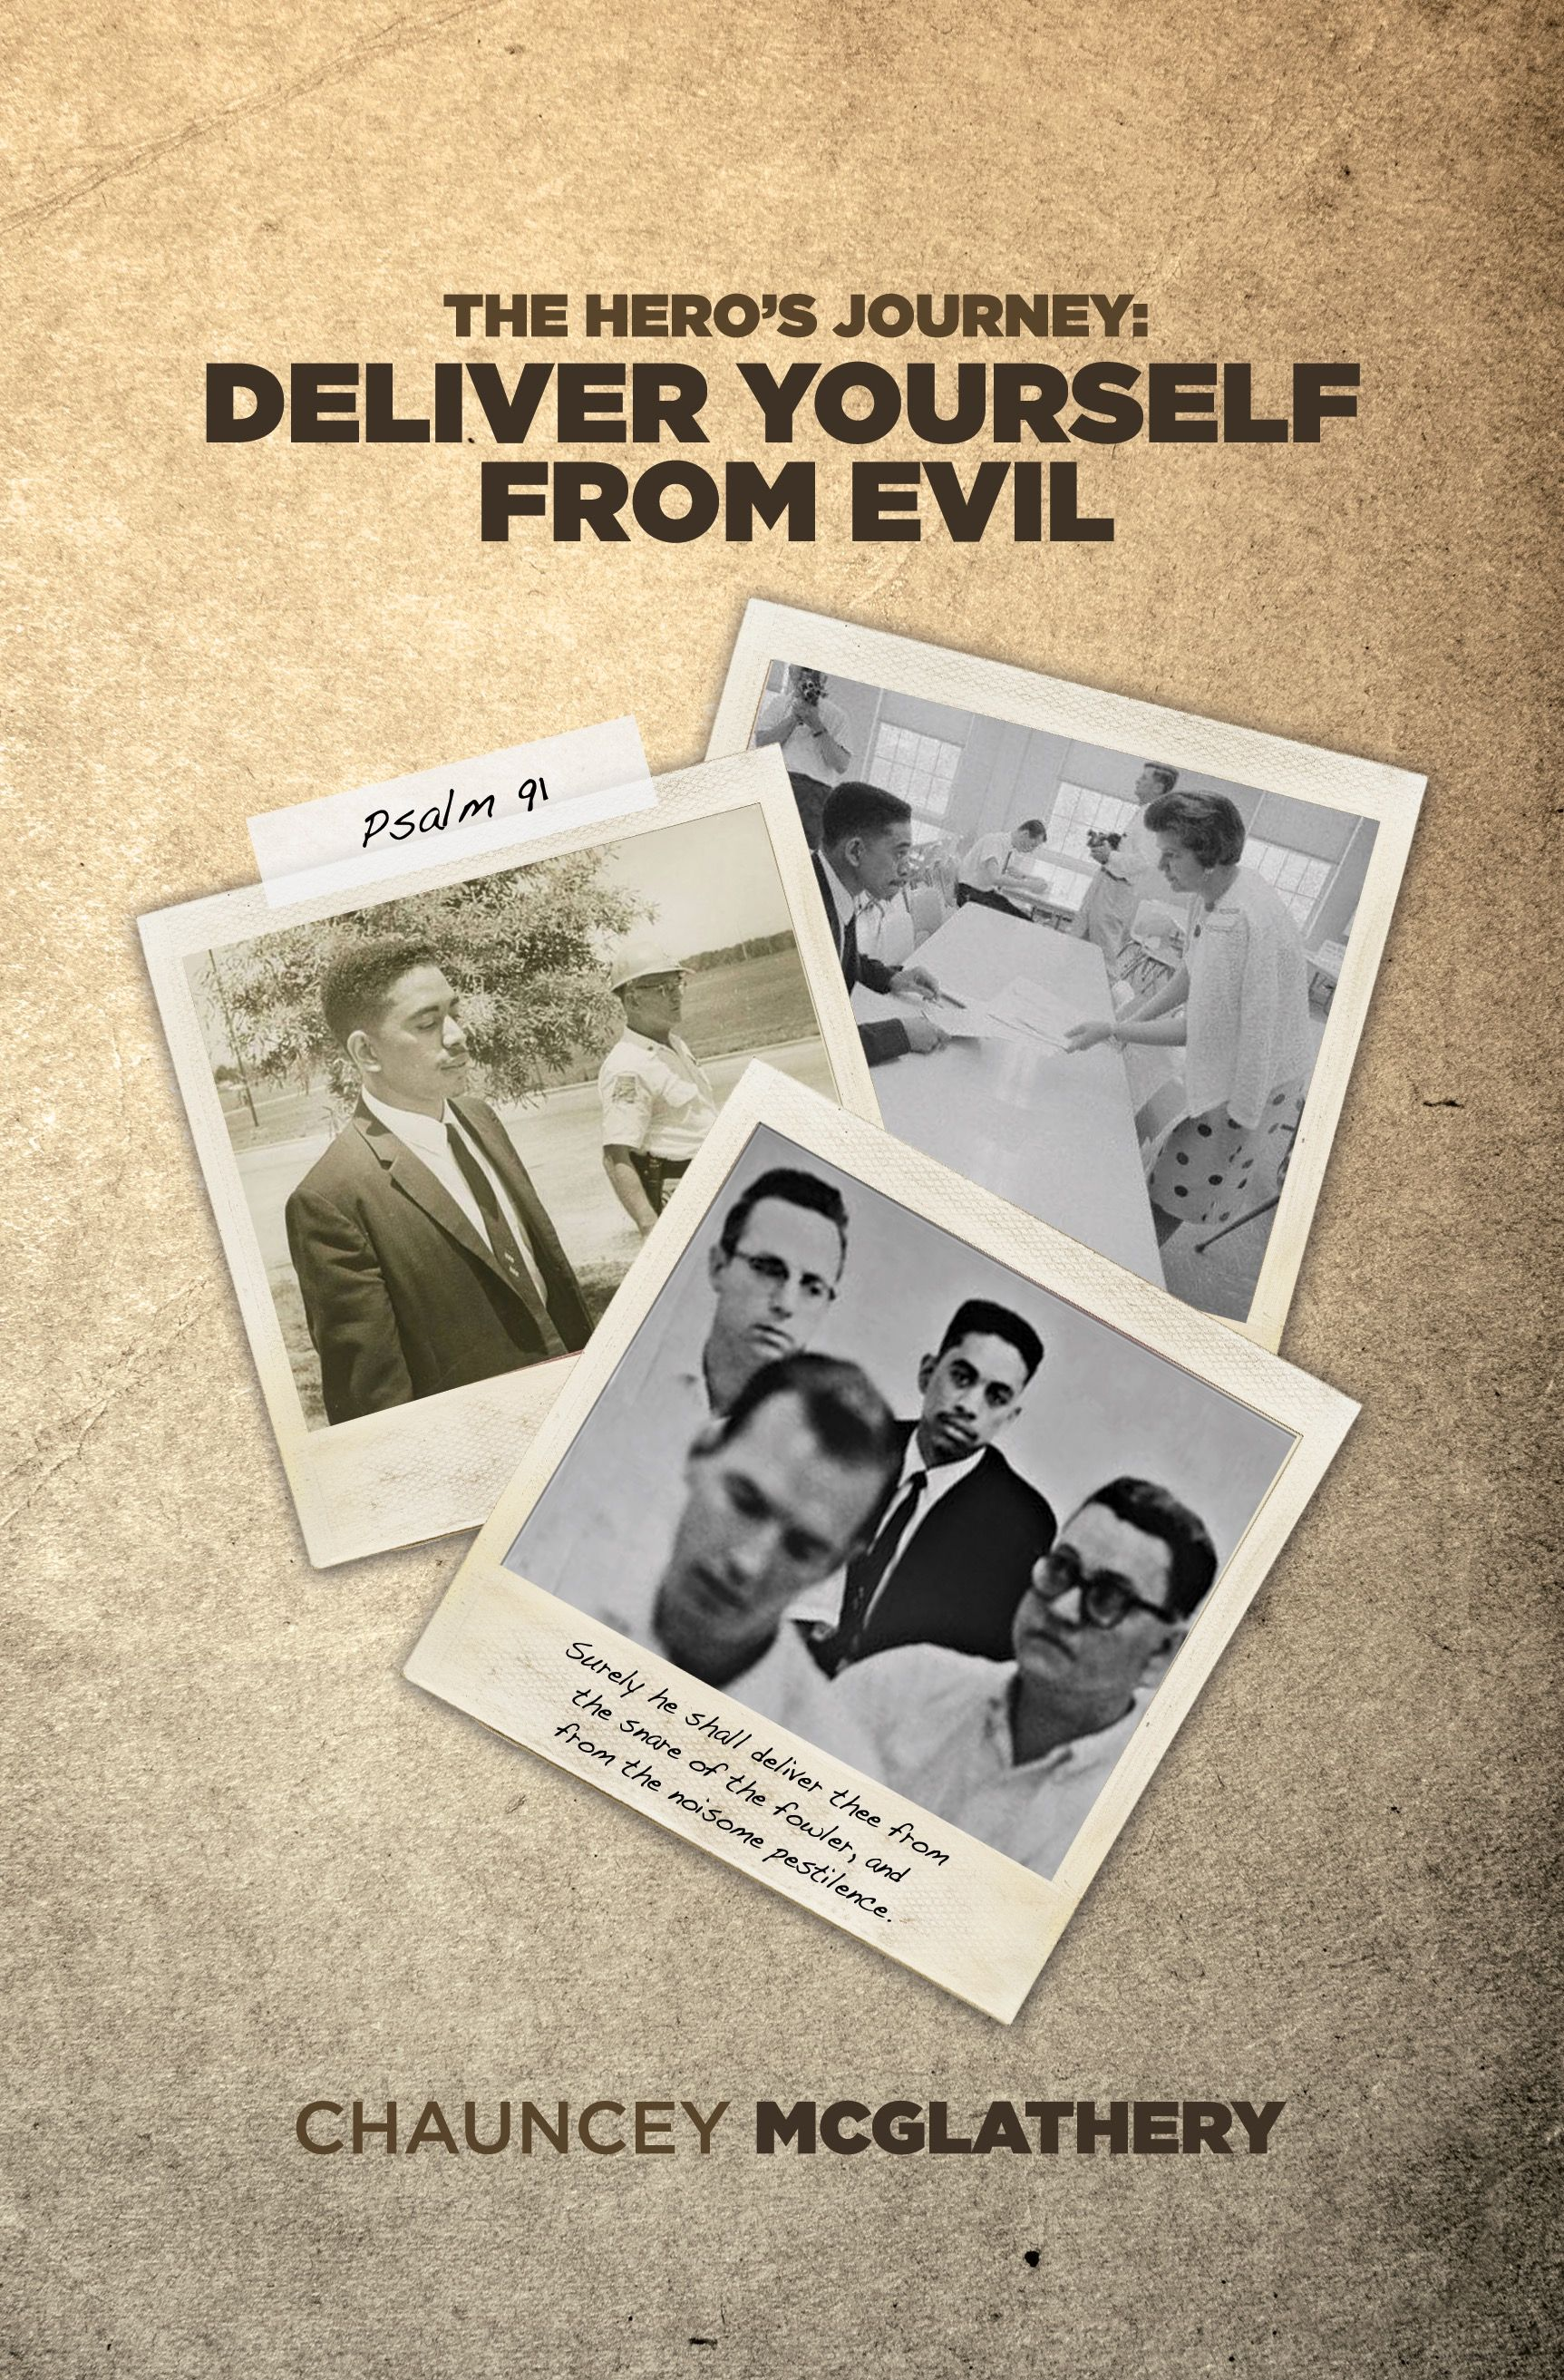 The Hero's Journey: Deliver Yourself From Evil's Book Image